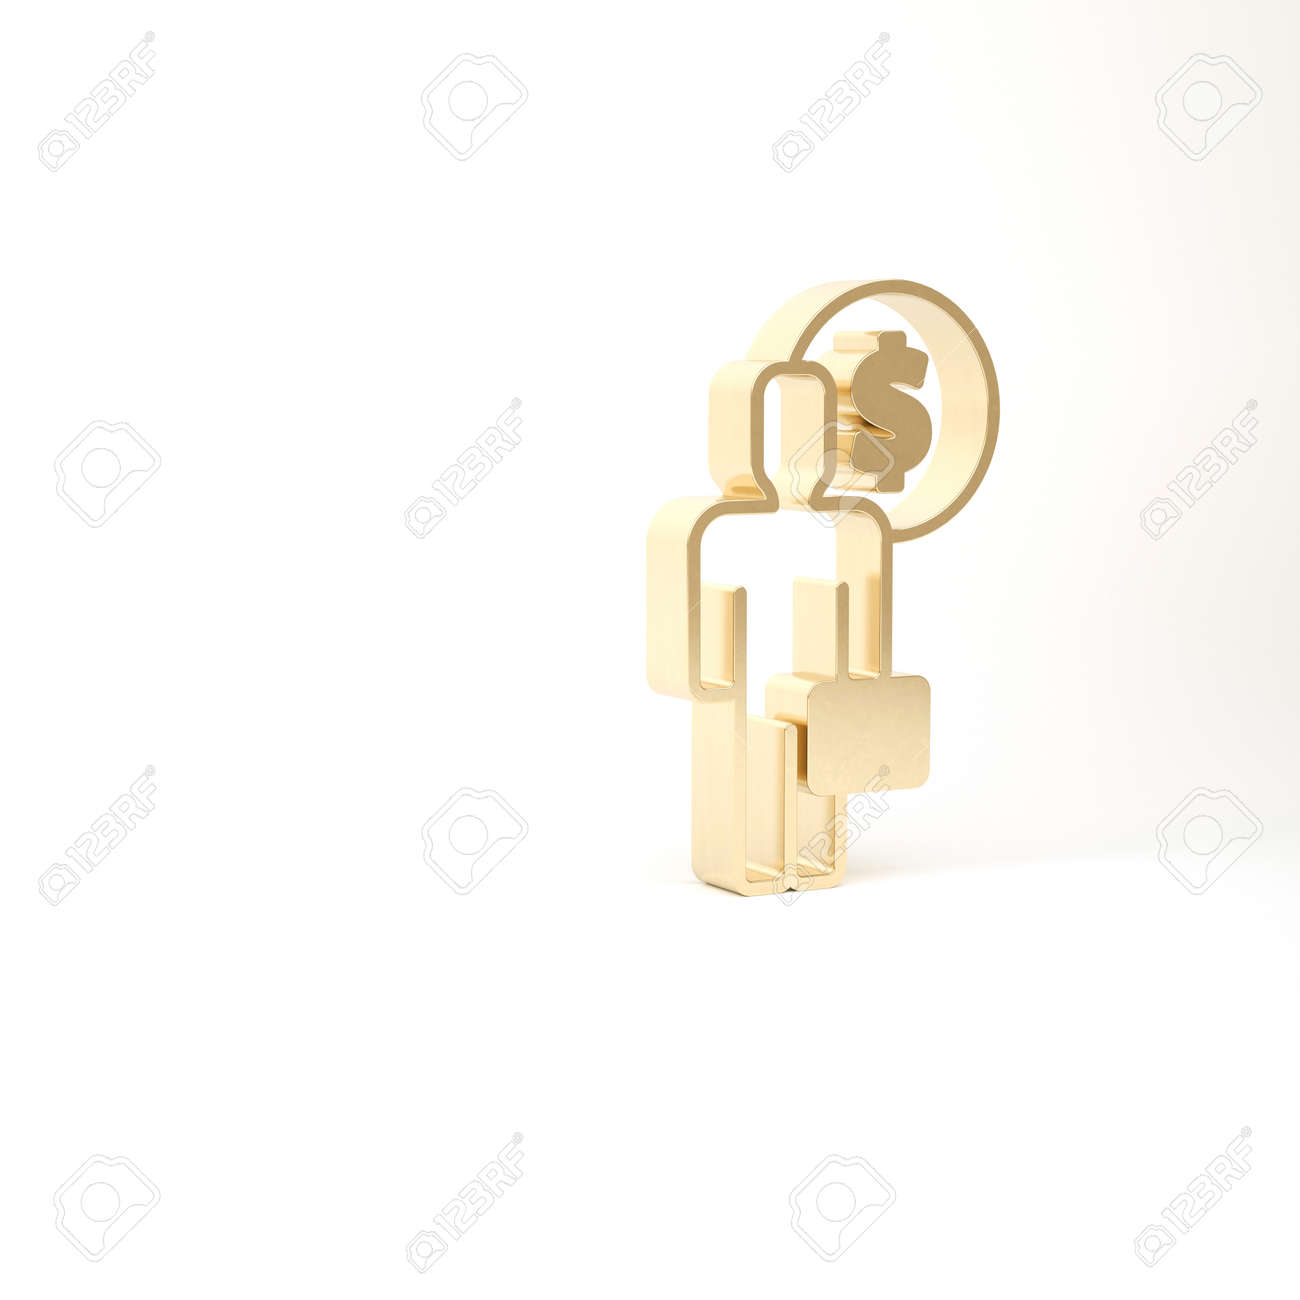 Gold Business man planning mind icon isolated on white background. Human head with dollar. Idea to earn money. Business investment growth. 3d illustration 3D render - 169803350